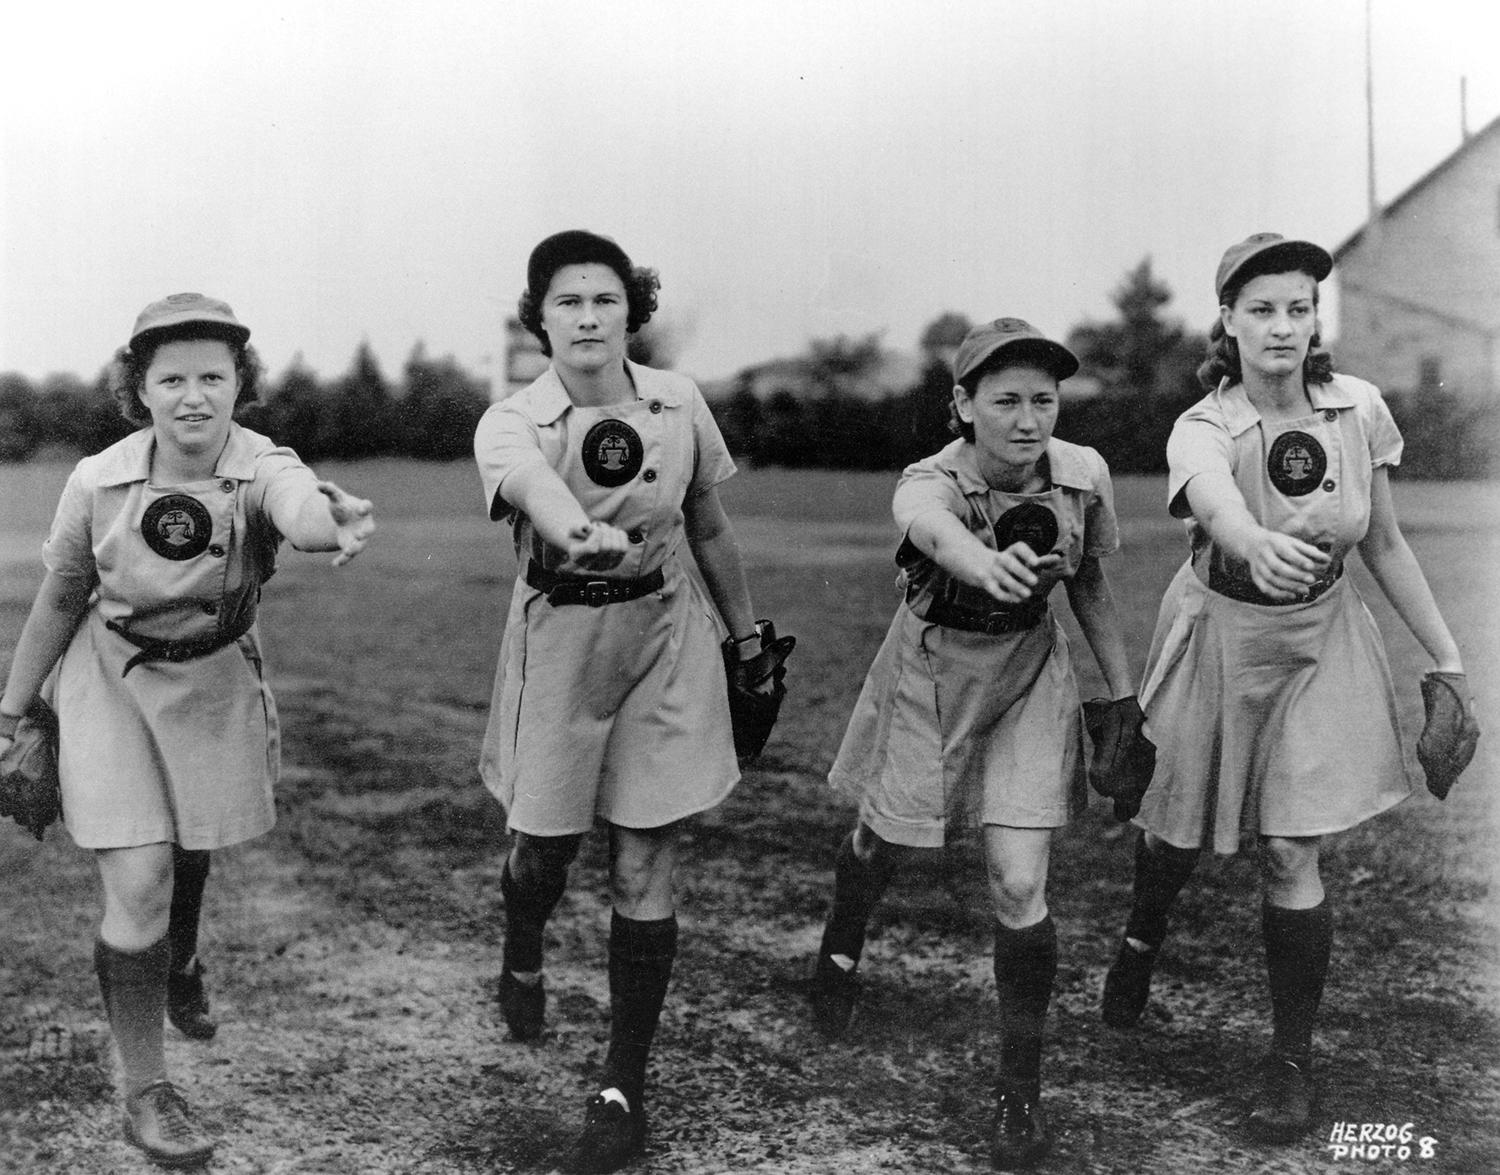 Pictured above, pitchers on the 1943 Rockford Peaches warm up prior to a game. From left to right: Mary Pratt, Olive Little, Marjorie Peters and Muriel Coben. (National Baseball Hall of Fame and Museum)